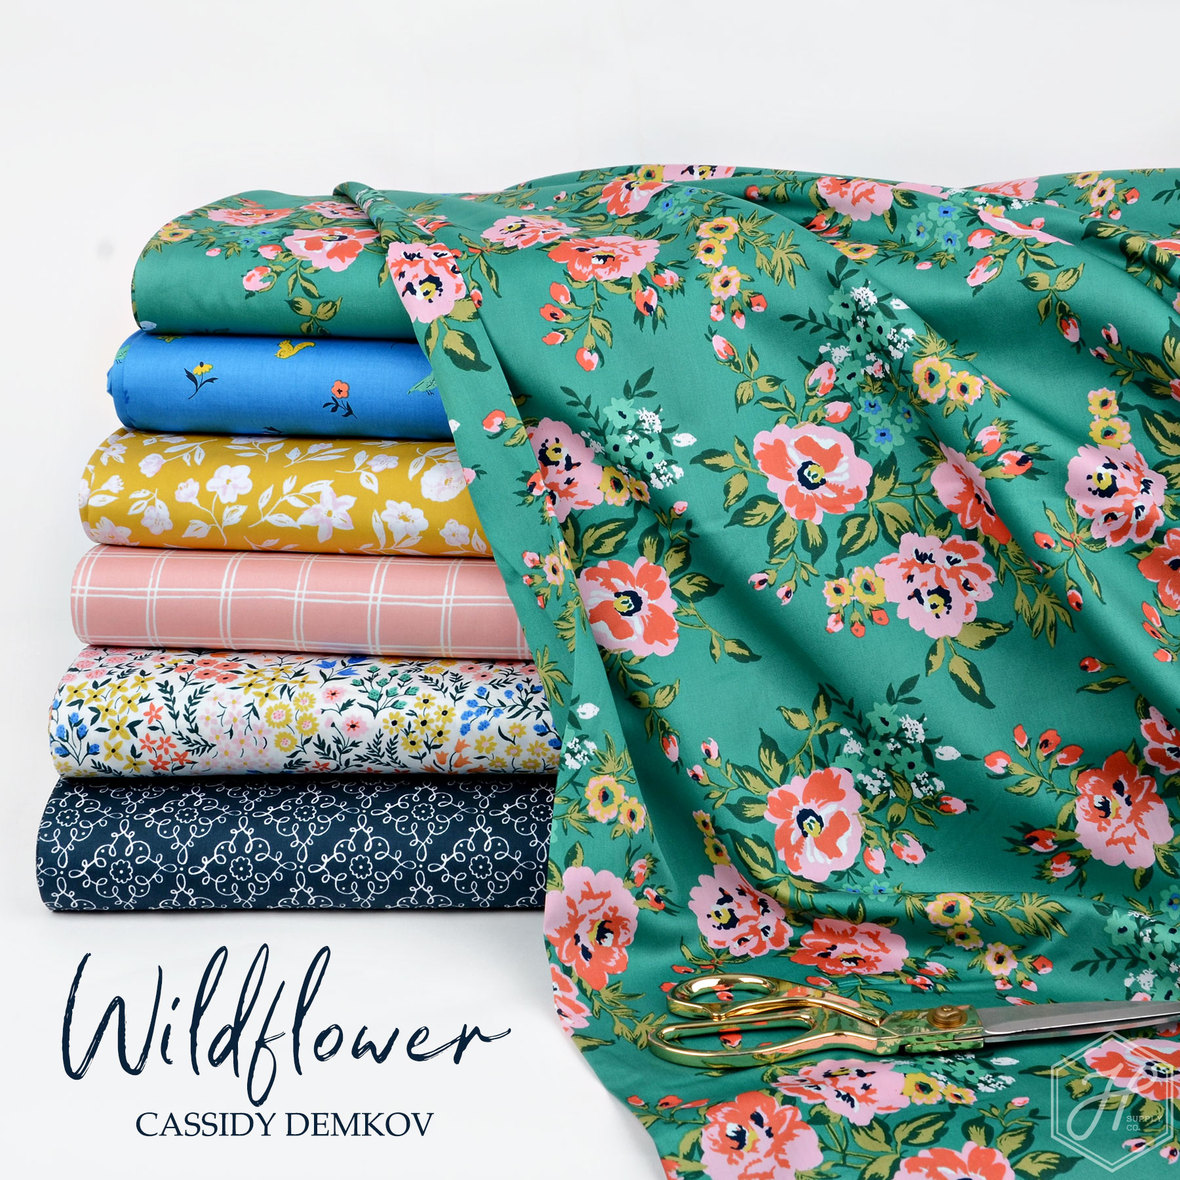 Wildflower-Cassidy-Demkov-for-Cloud-9-Fabric-at-Hawthorne-Supply-Co